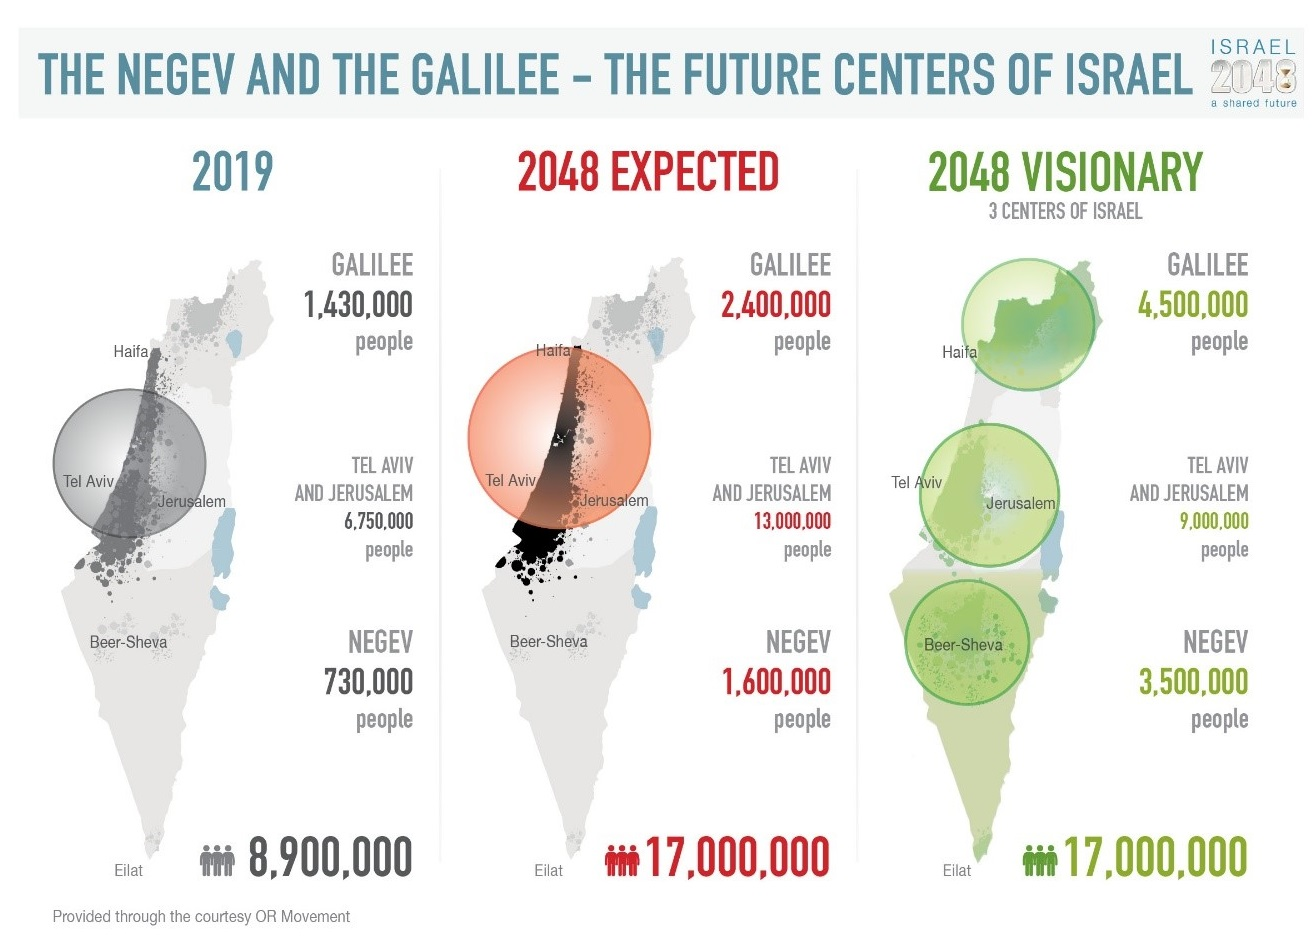 How will Israel look in 2048?